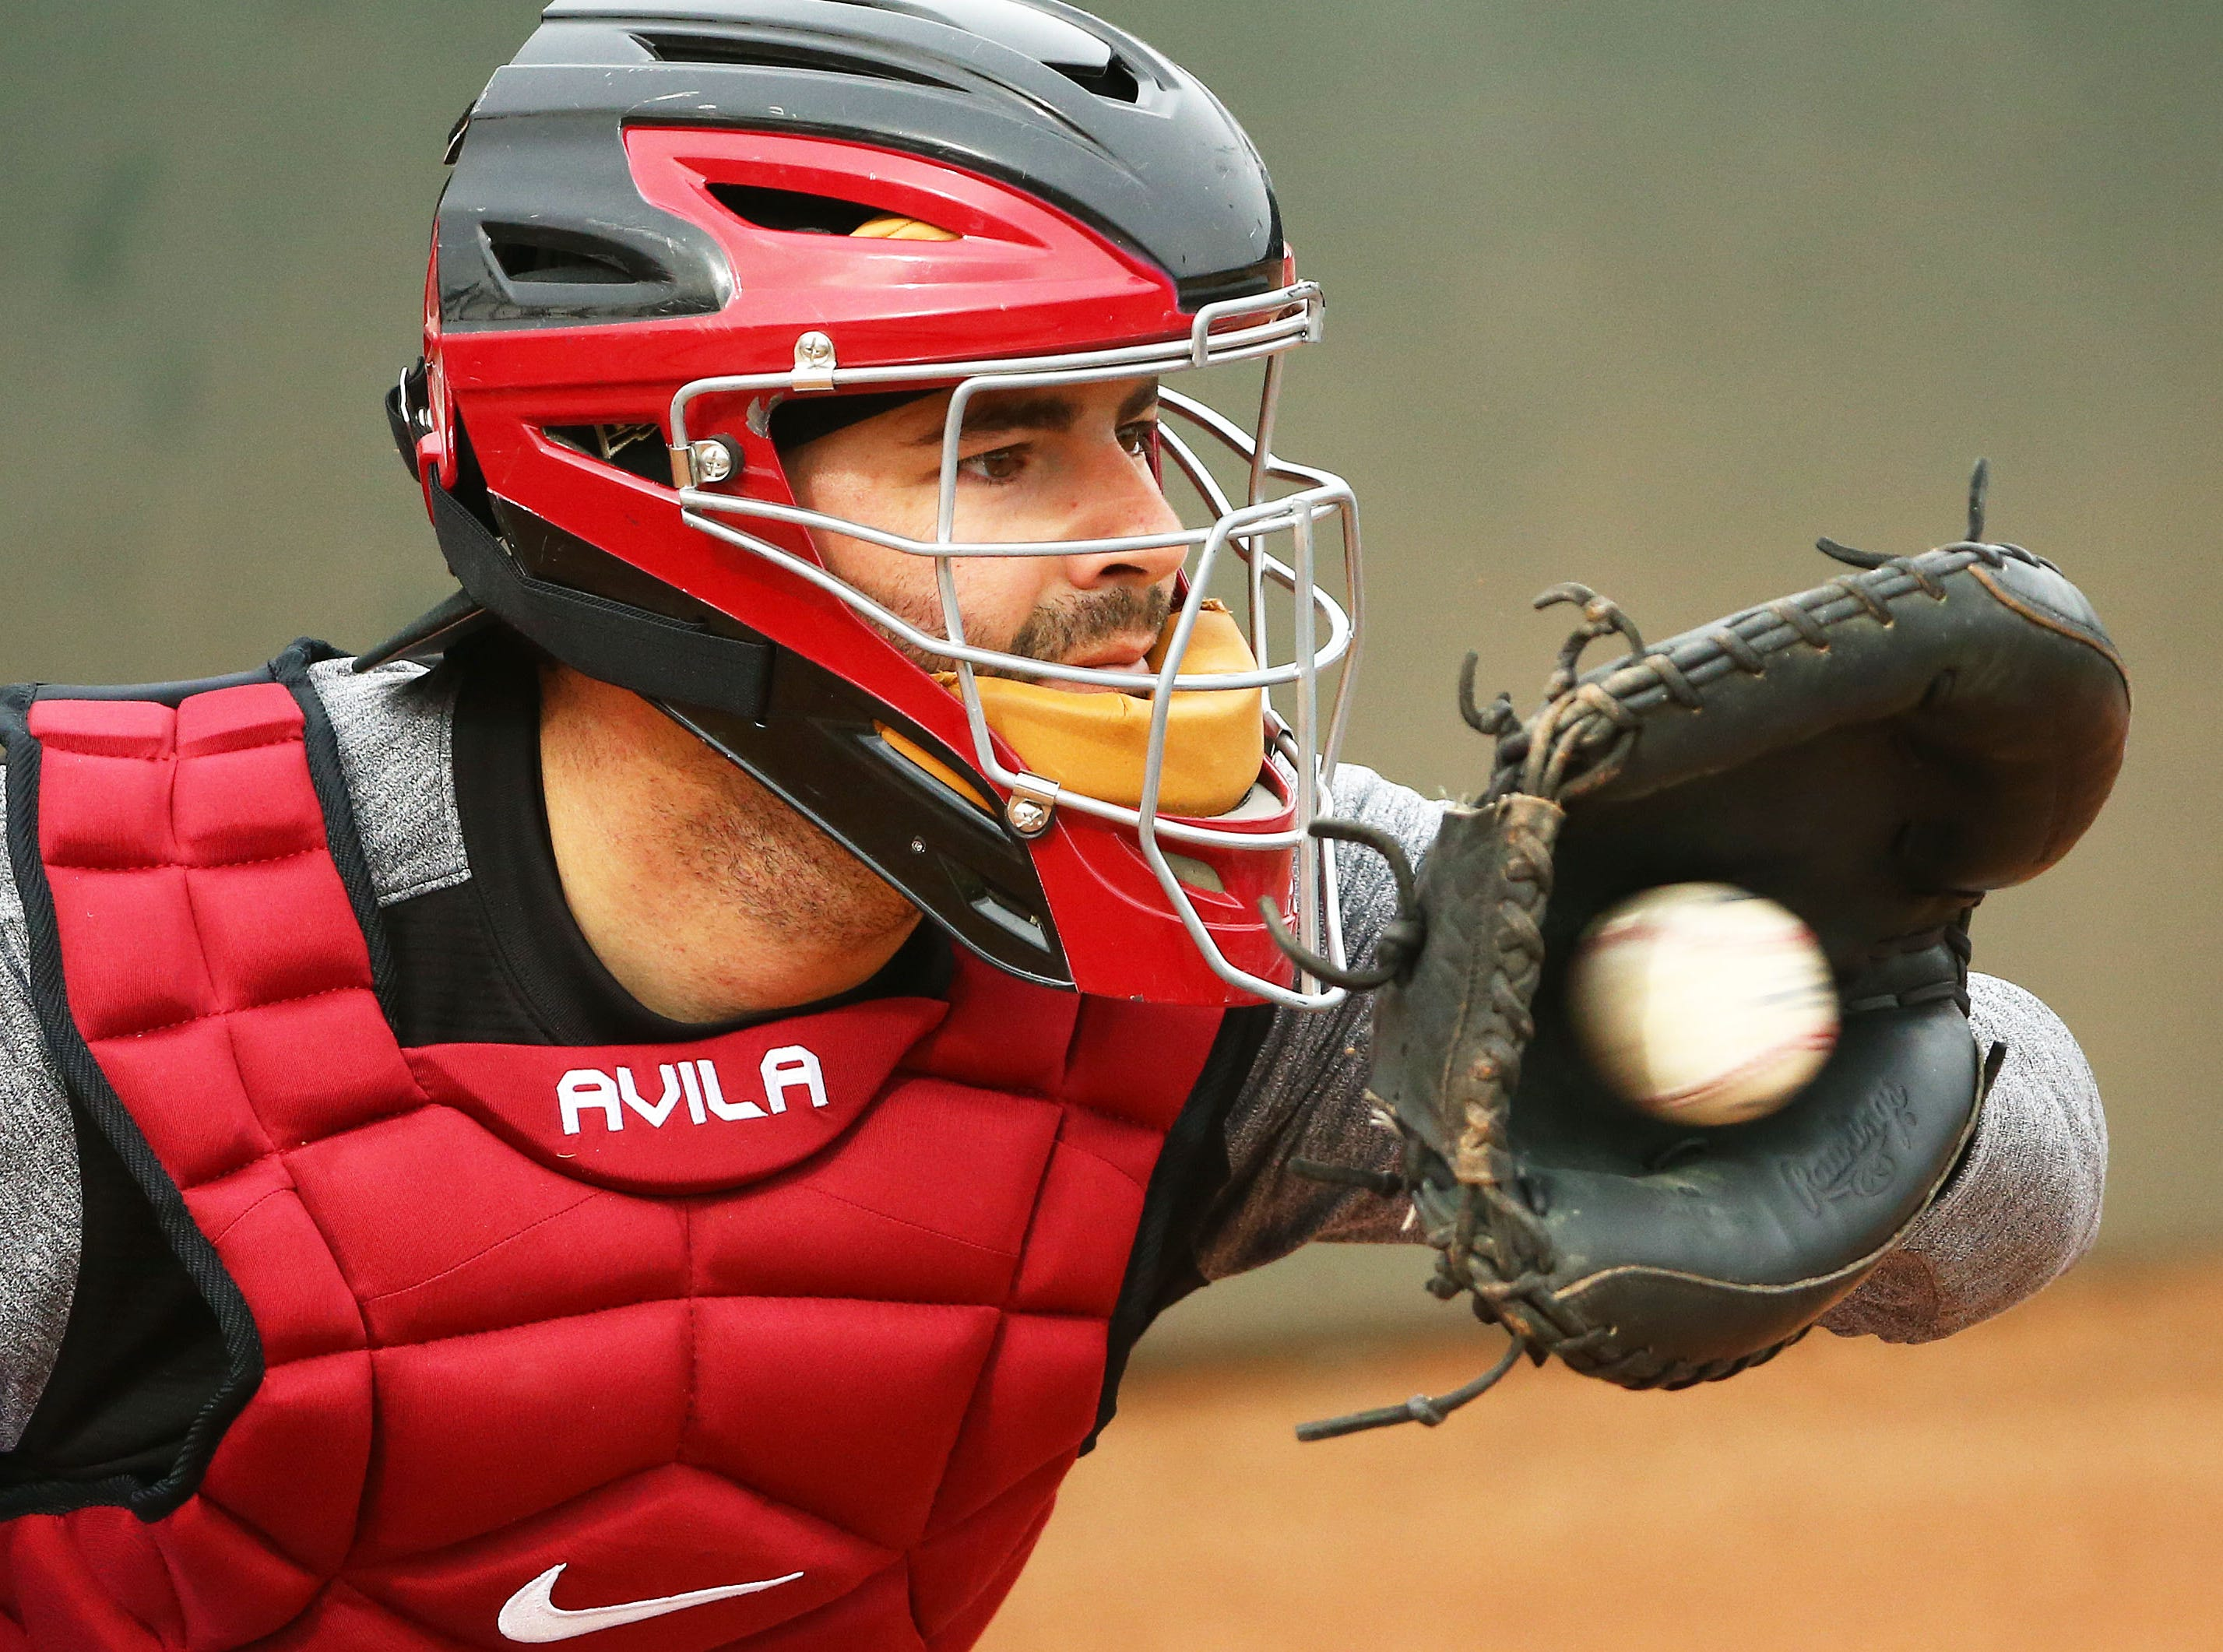 Arizona Diamondbacks catcher Alex Avila works the bullpen during the first day of spring training workouts on Feb. 13 at Salt River Fields in Scottsdale.